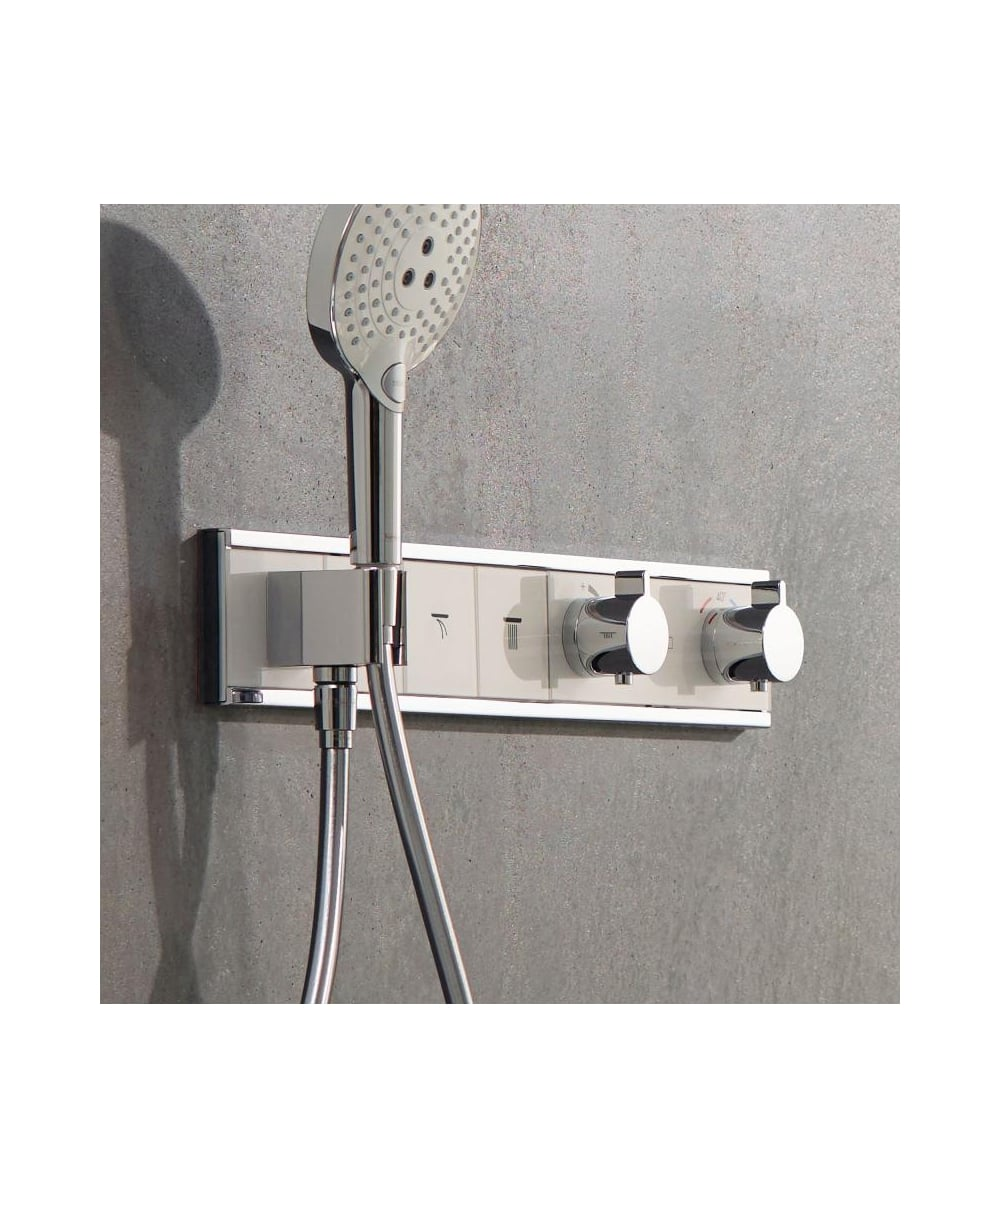 Hansgrohe RainSelect 3 Outlet Concealed Thermostatic Shower Mixer